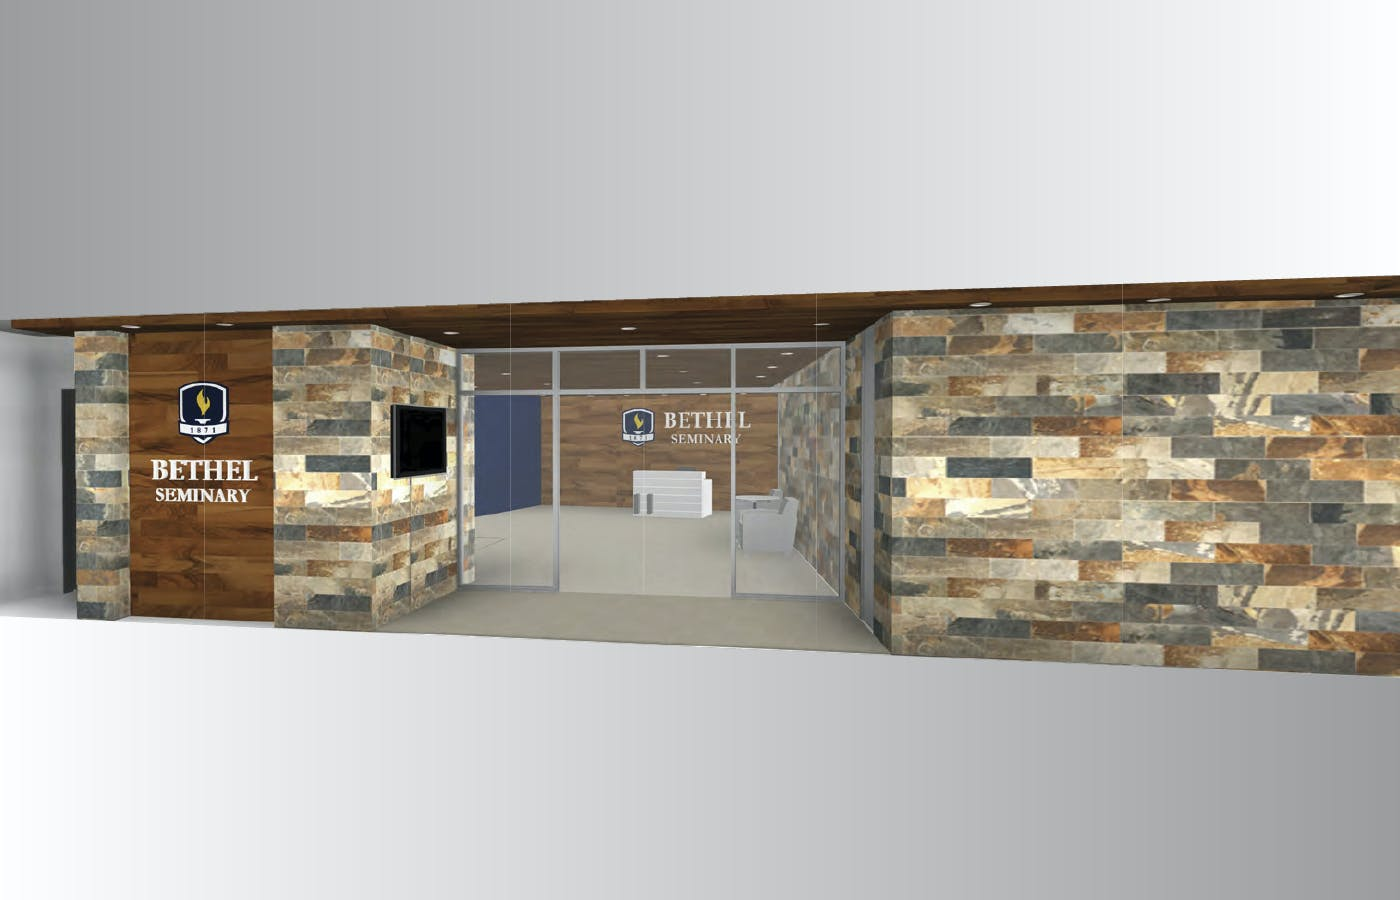 The main entrance of Bethel Seminary will incorporate natural elements like tile, wood, and glass, consistent with the pastoral feel of the current seminary complex. A digital display and dedicated signage will provide a sense of place to community members and visitors.